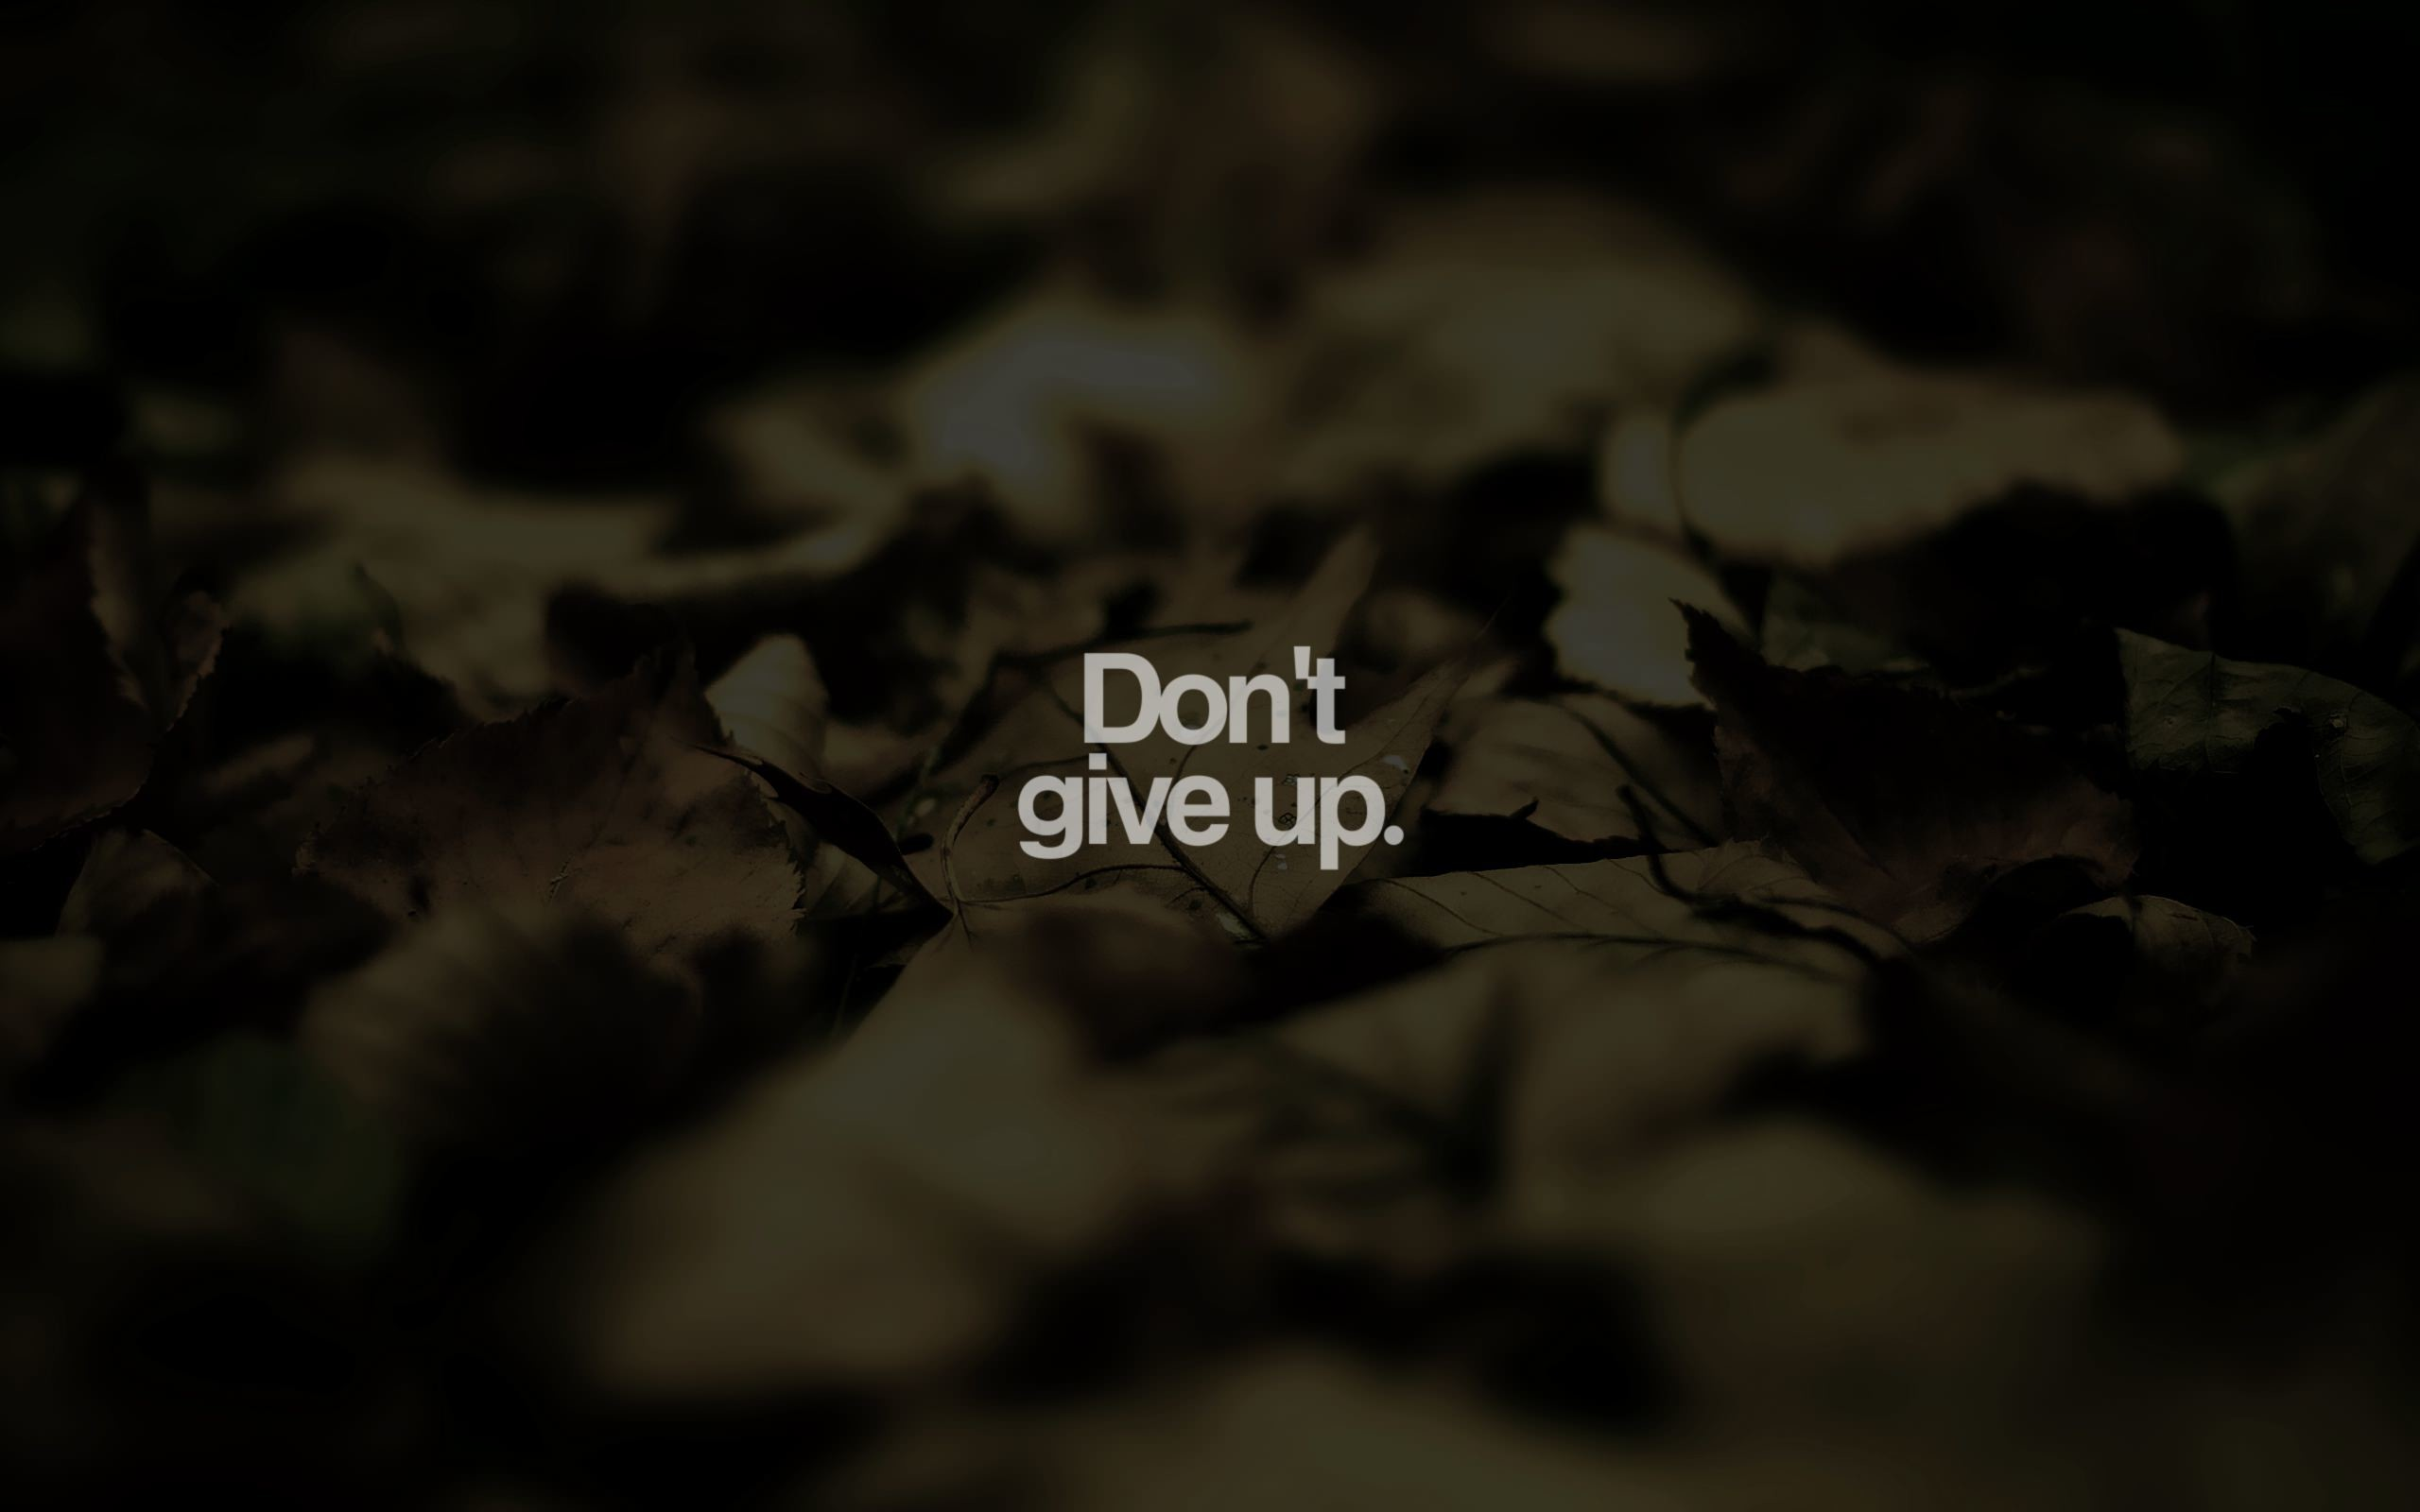 Res: 2560x1600, Don't give up.